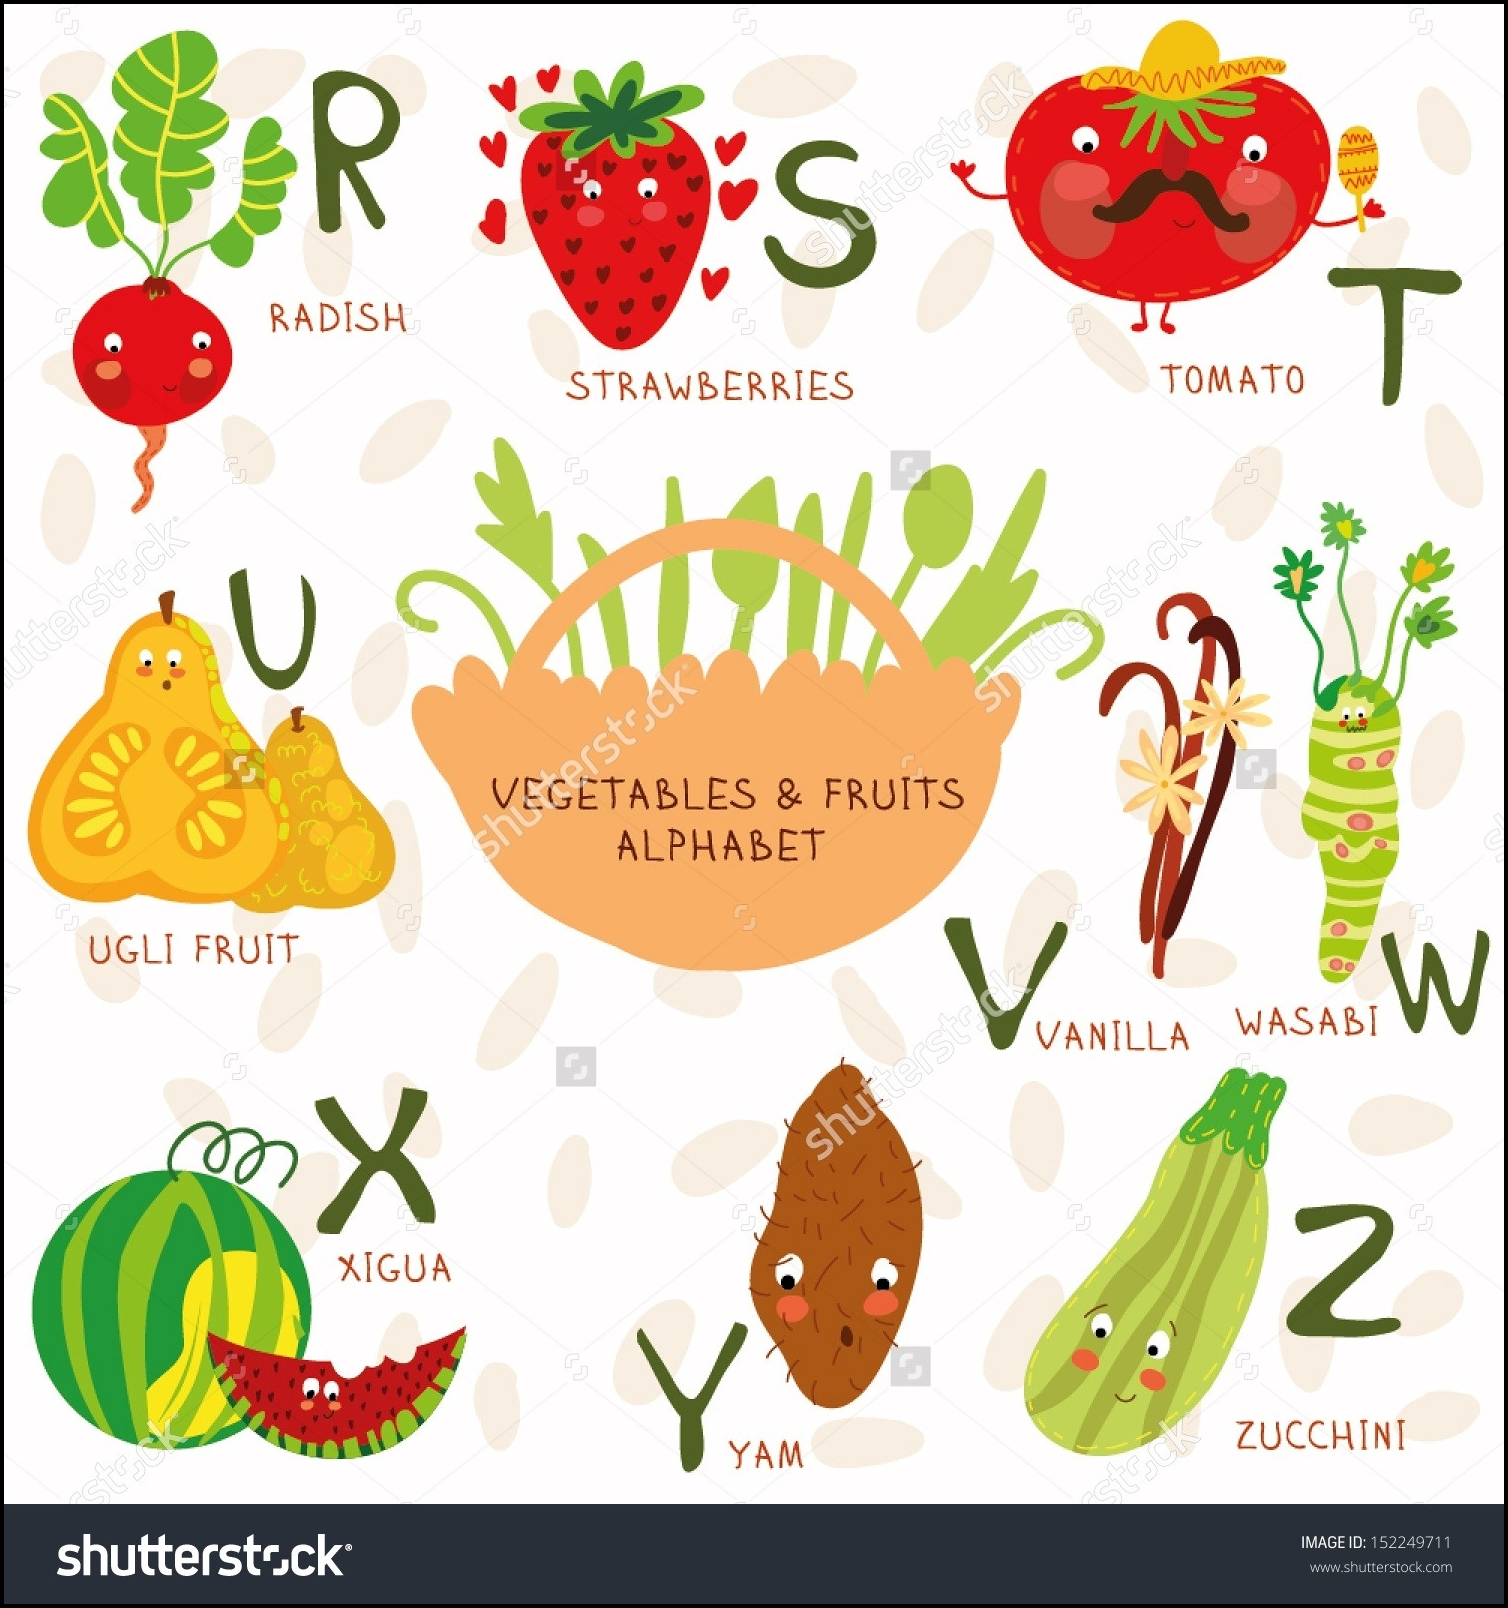 Vegetables That Start With I